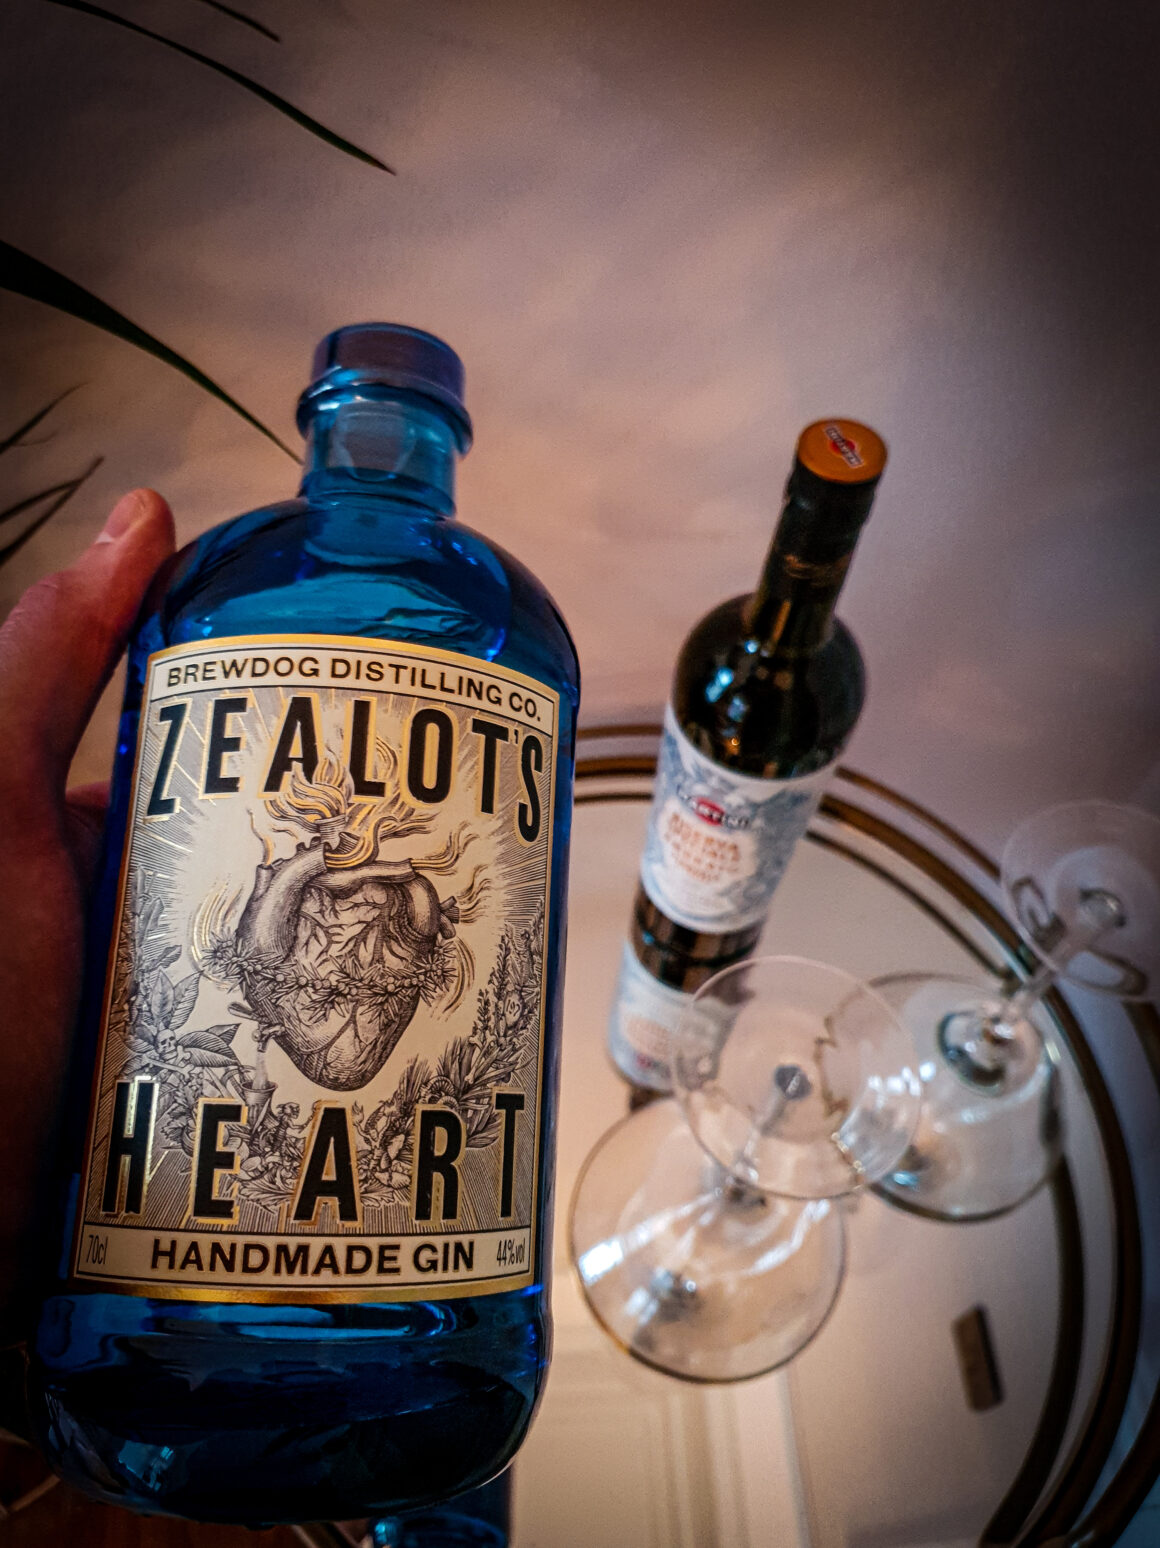 NYE Cocktail Creation - BrewDog Zealot's Heart Martini BrewDog Distilling Co